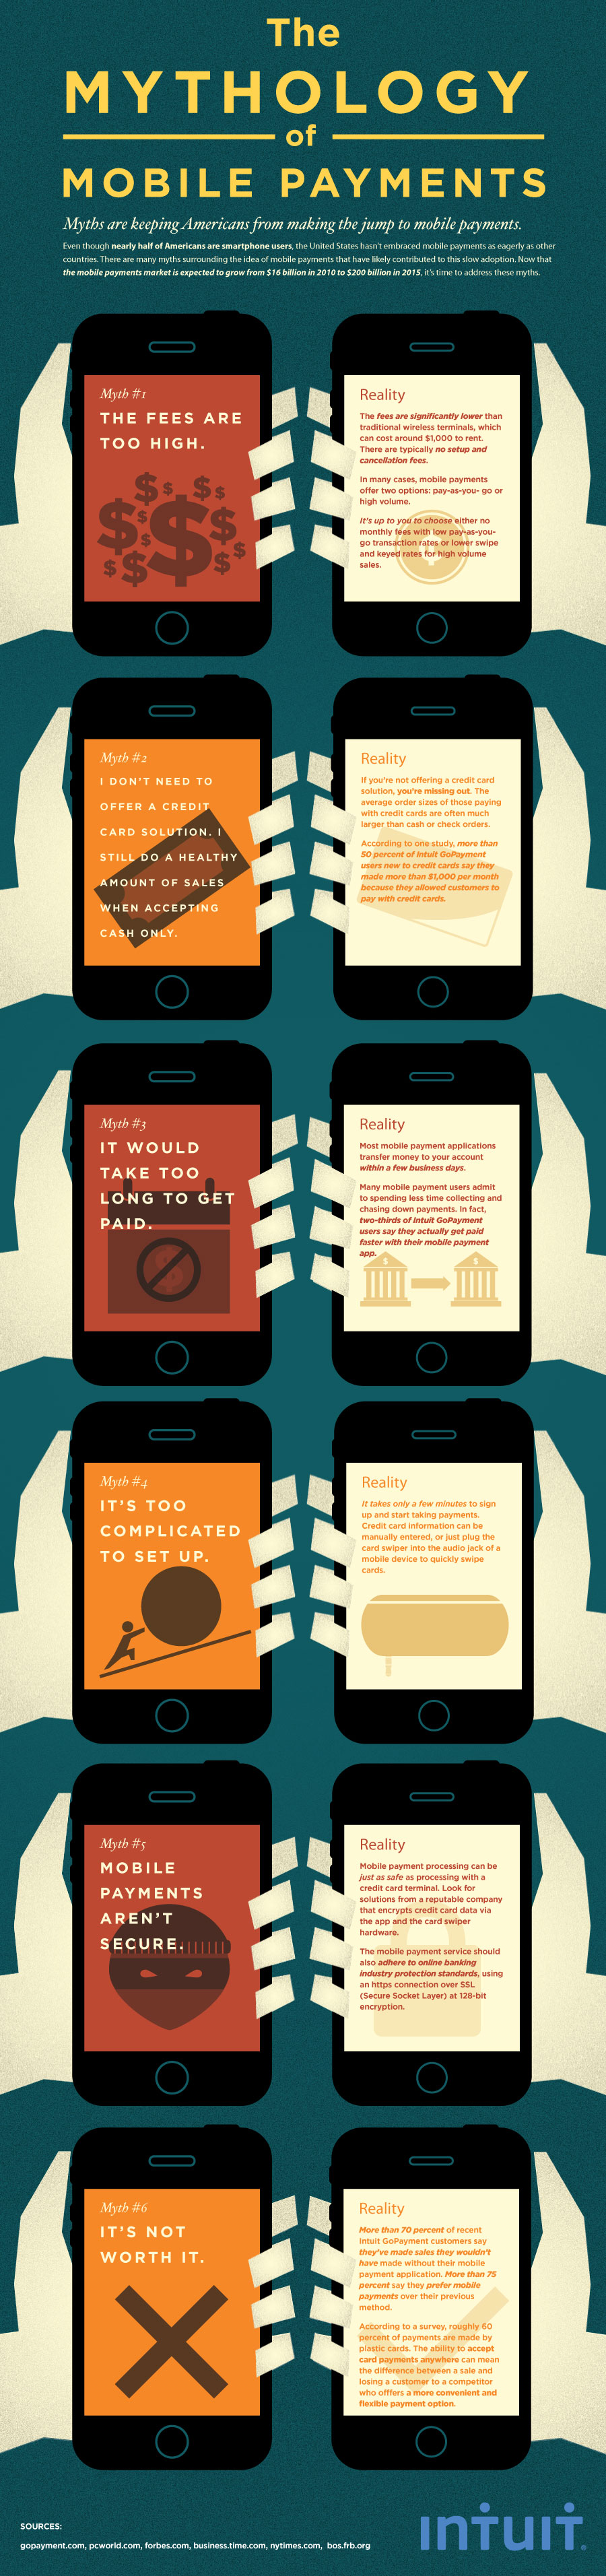 Mobile Payment Myths